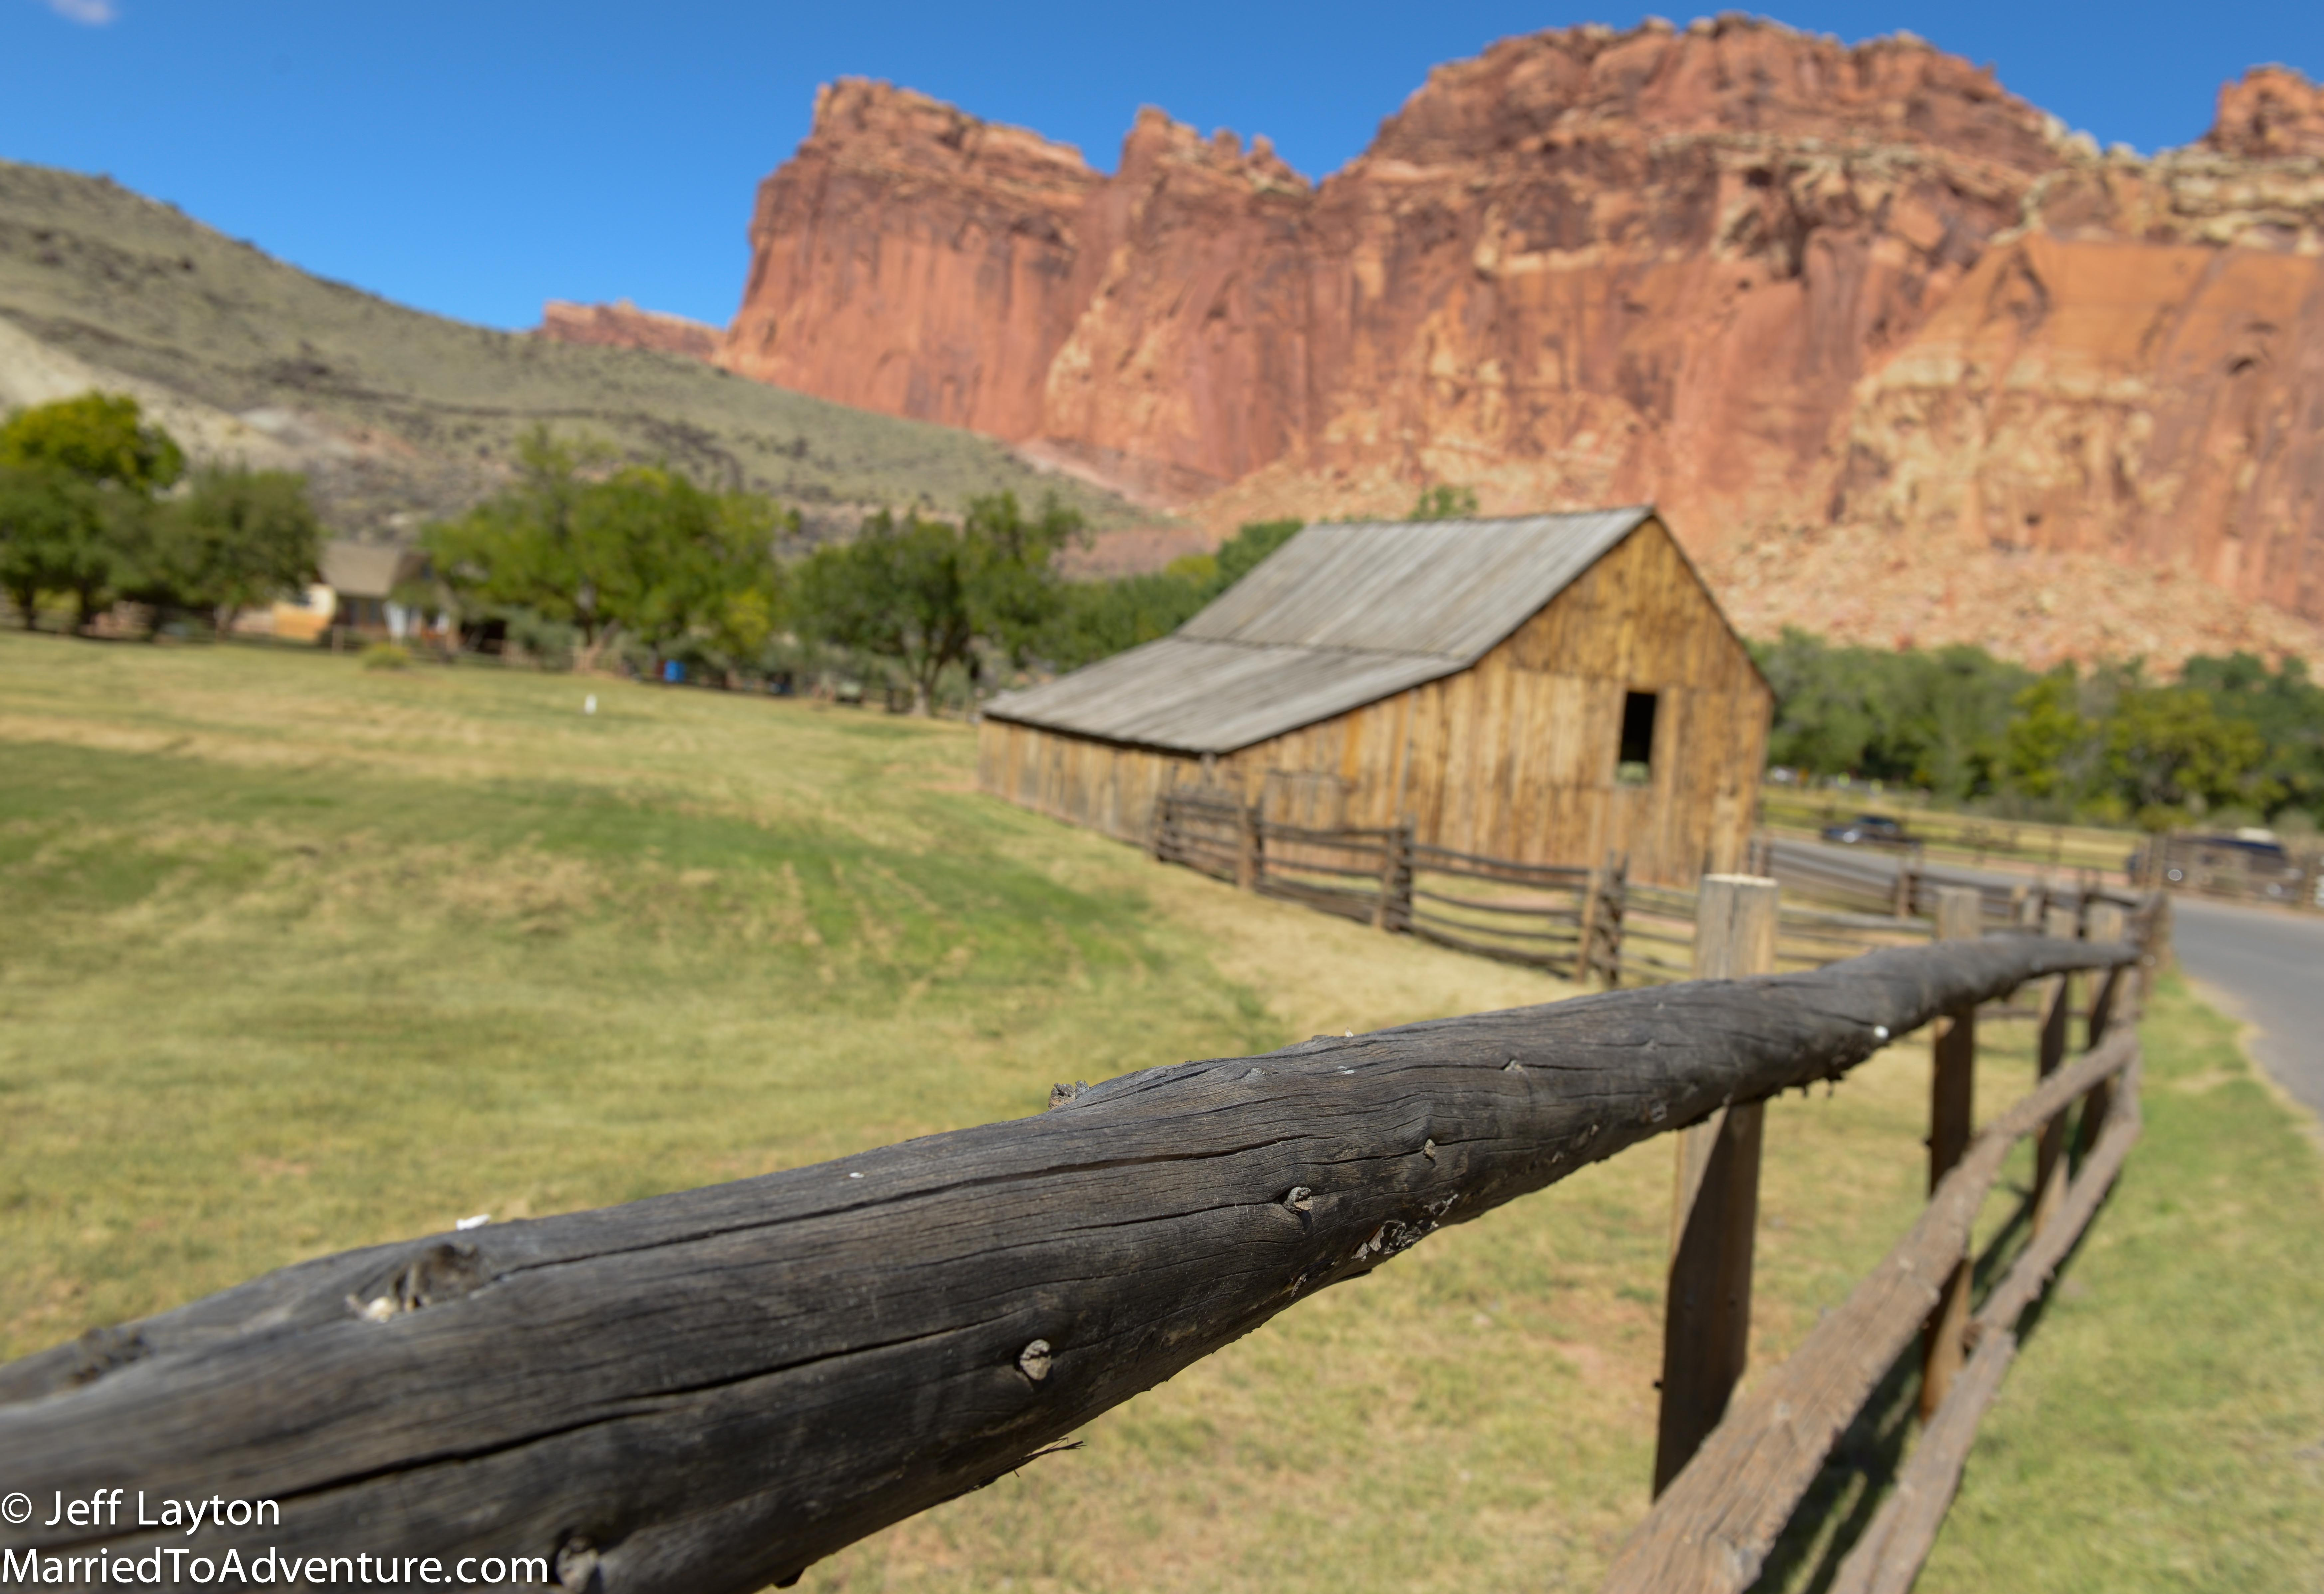 In the heart of Fruita - a Mormon pioneer settlement in Capitol Reef NP